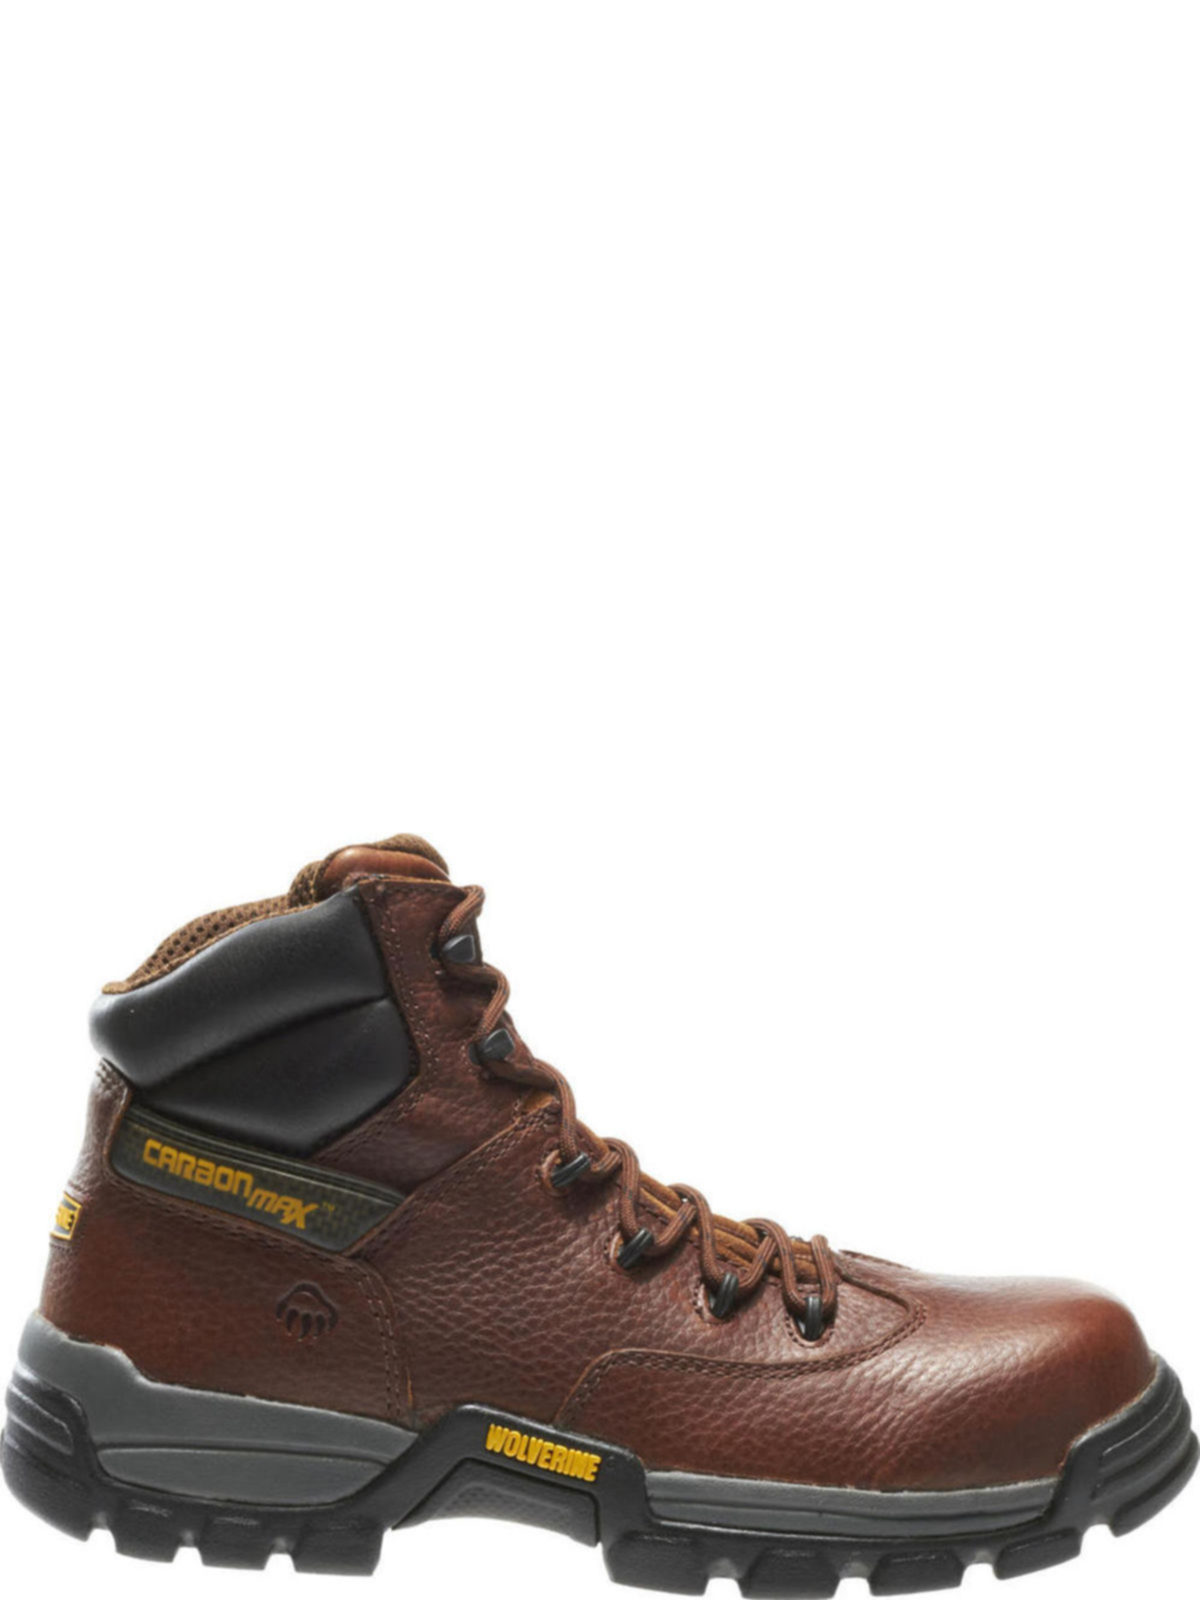 3b91a481717 Wolverine Mens Guardian 6